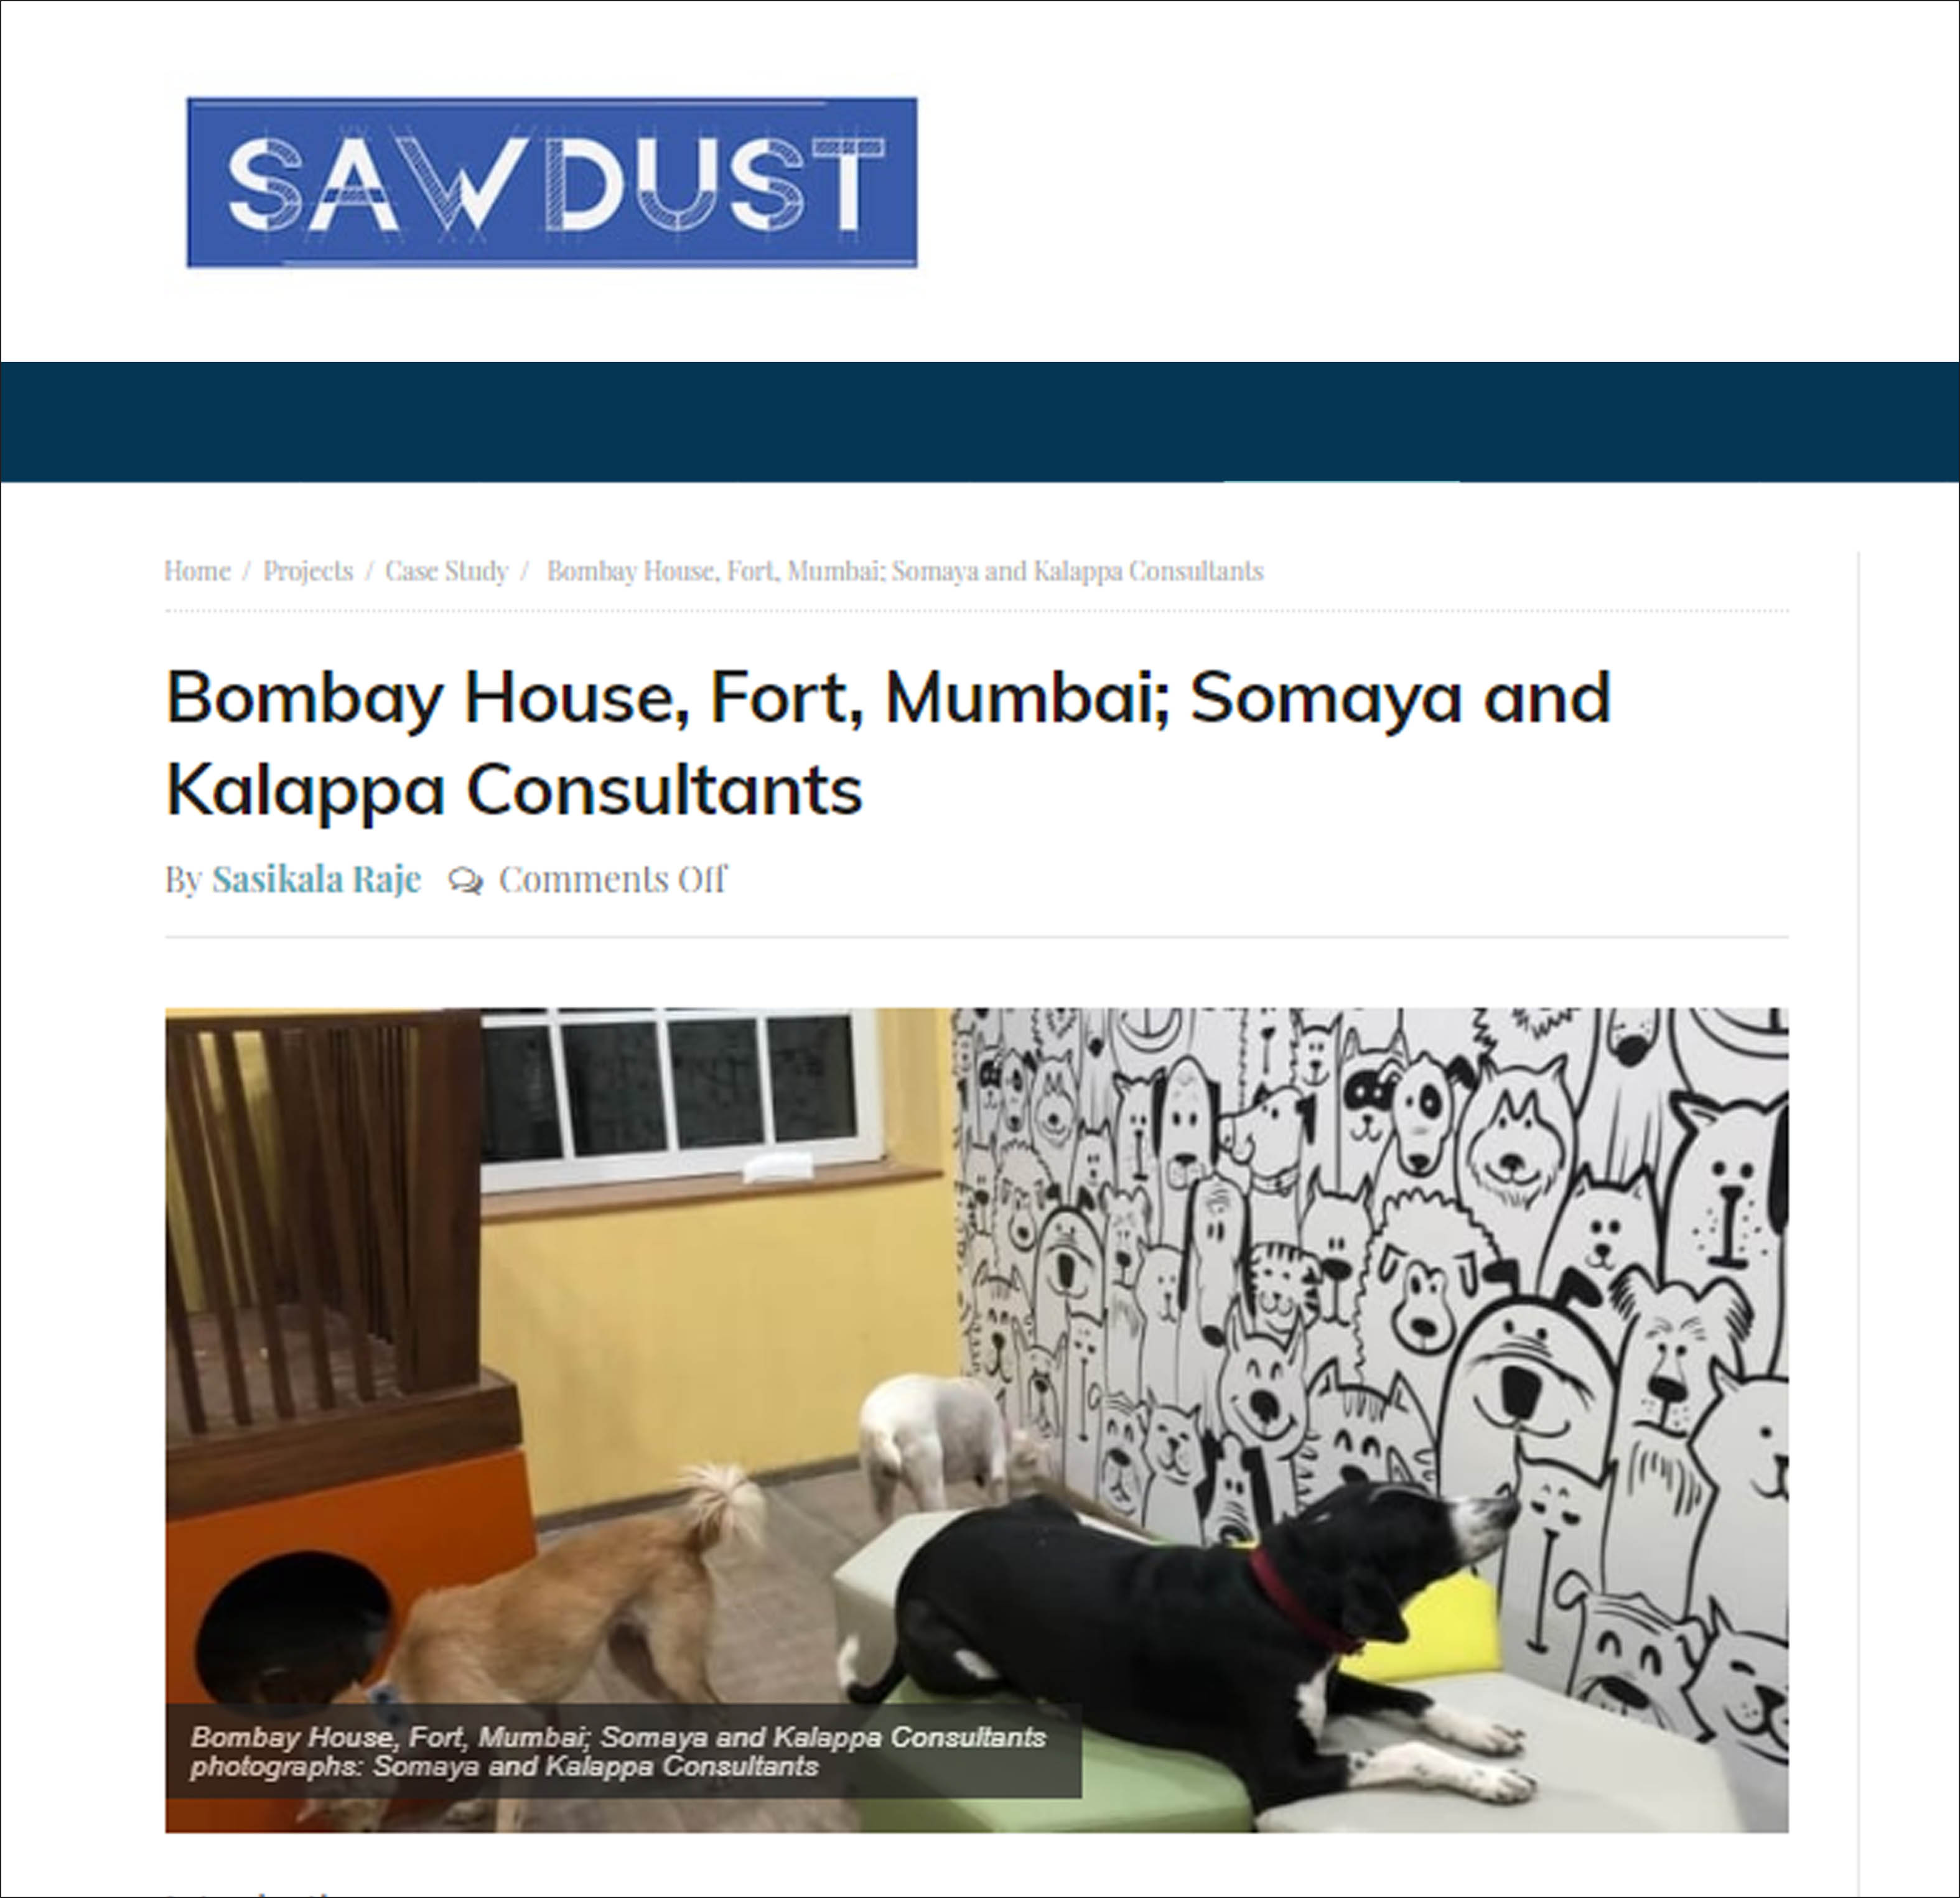 Bombay House, Fort, Mumbai; Somaya and Kalappa Consultants, Sawdust - on 29 July 2018